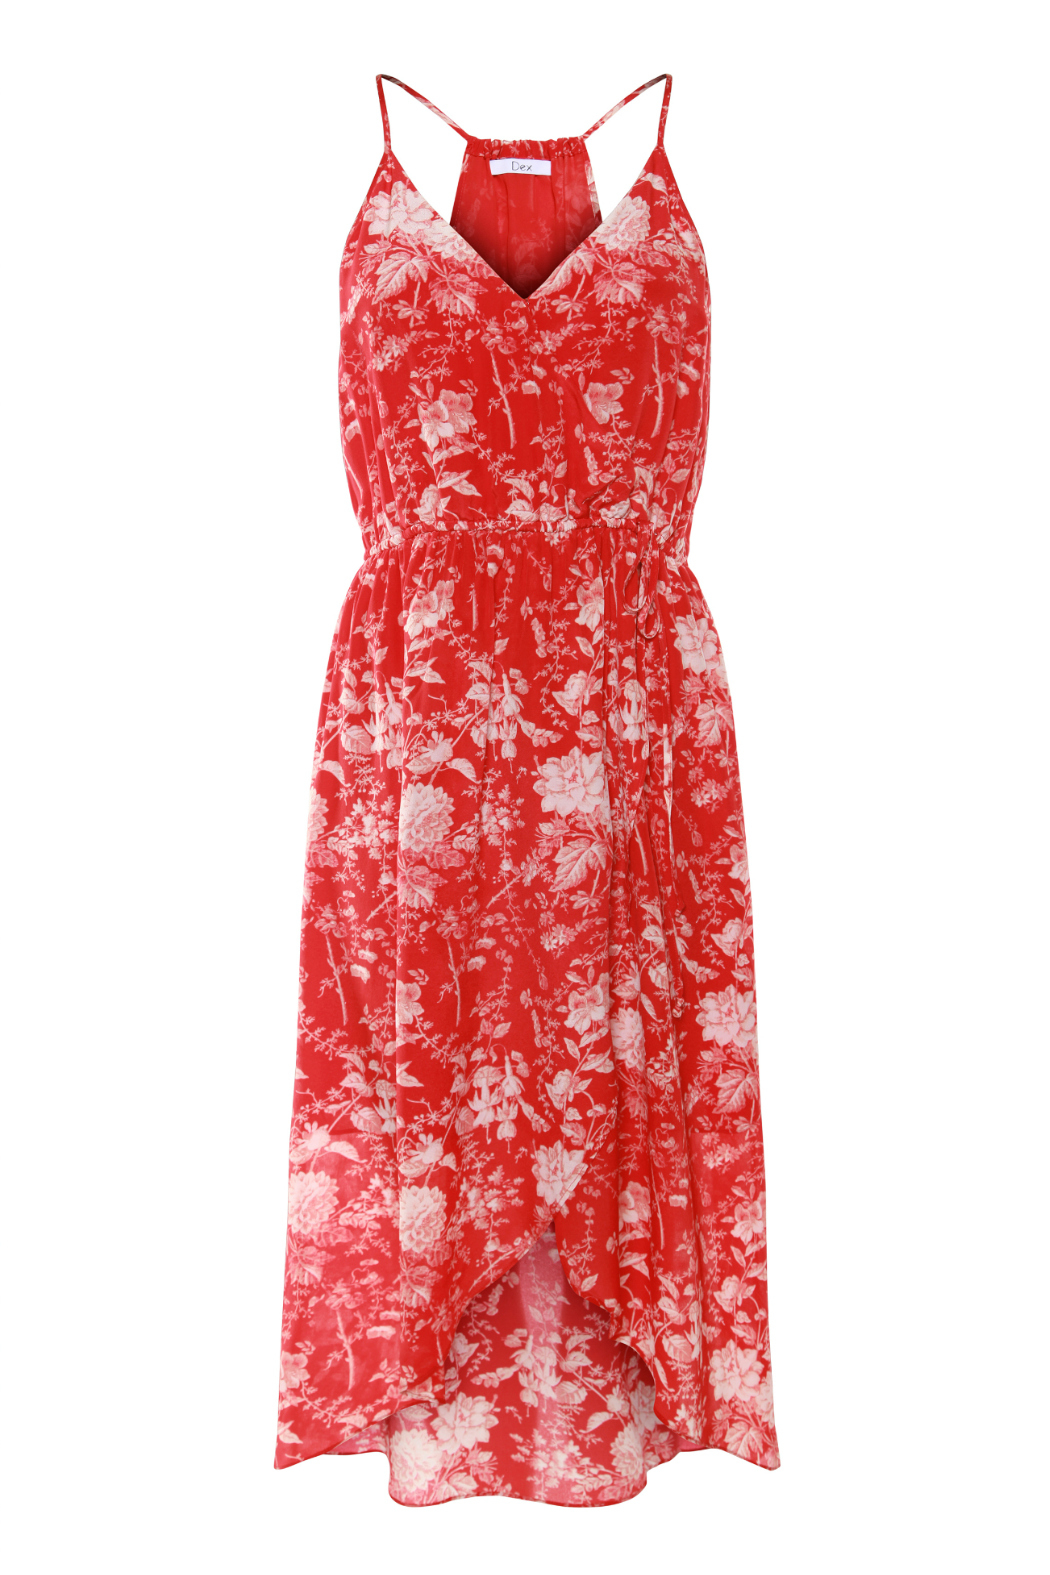 3eaab56bd6771 Dex Floral Print Halter Faux Wrap Dress from New Jersey by ...